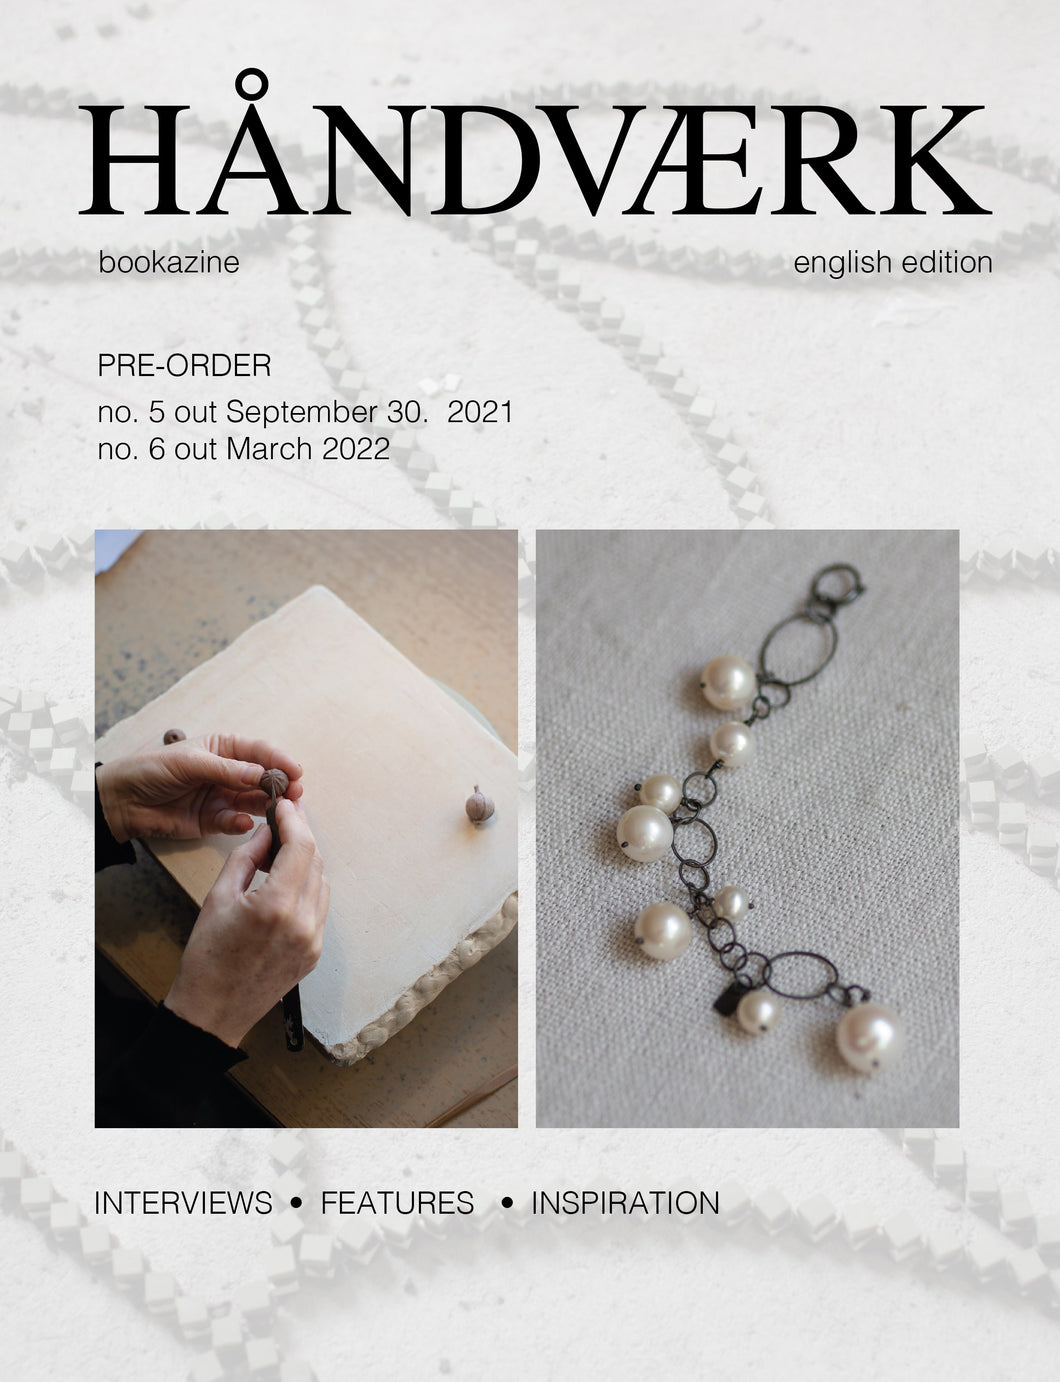 Pre-order HÅNDVÆRK bookazine no.5 & no.6 english tekst